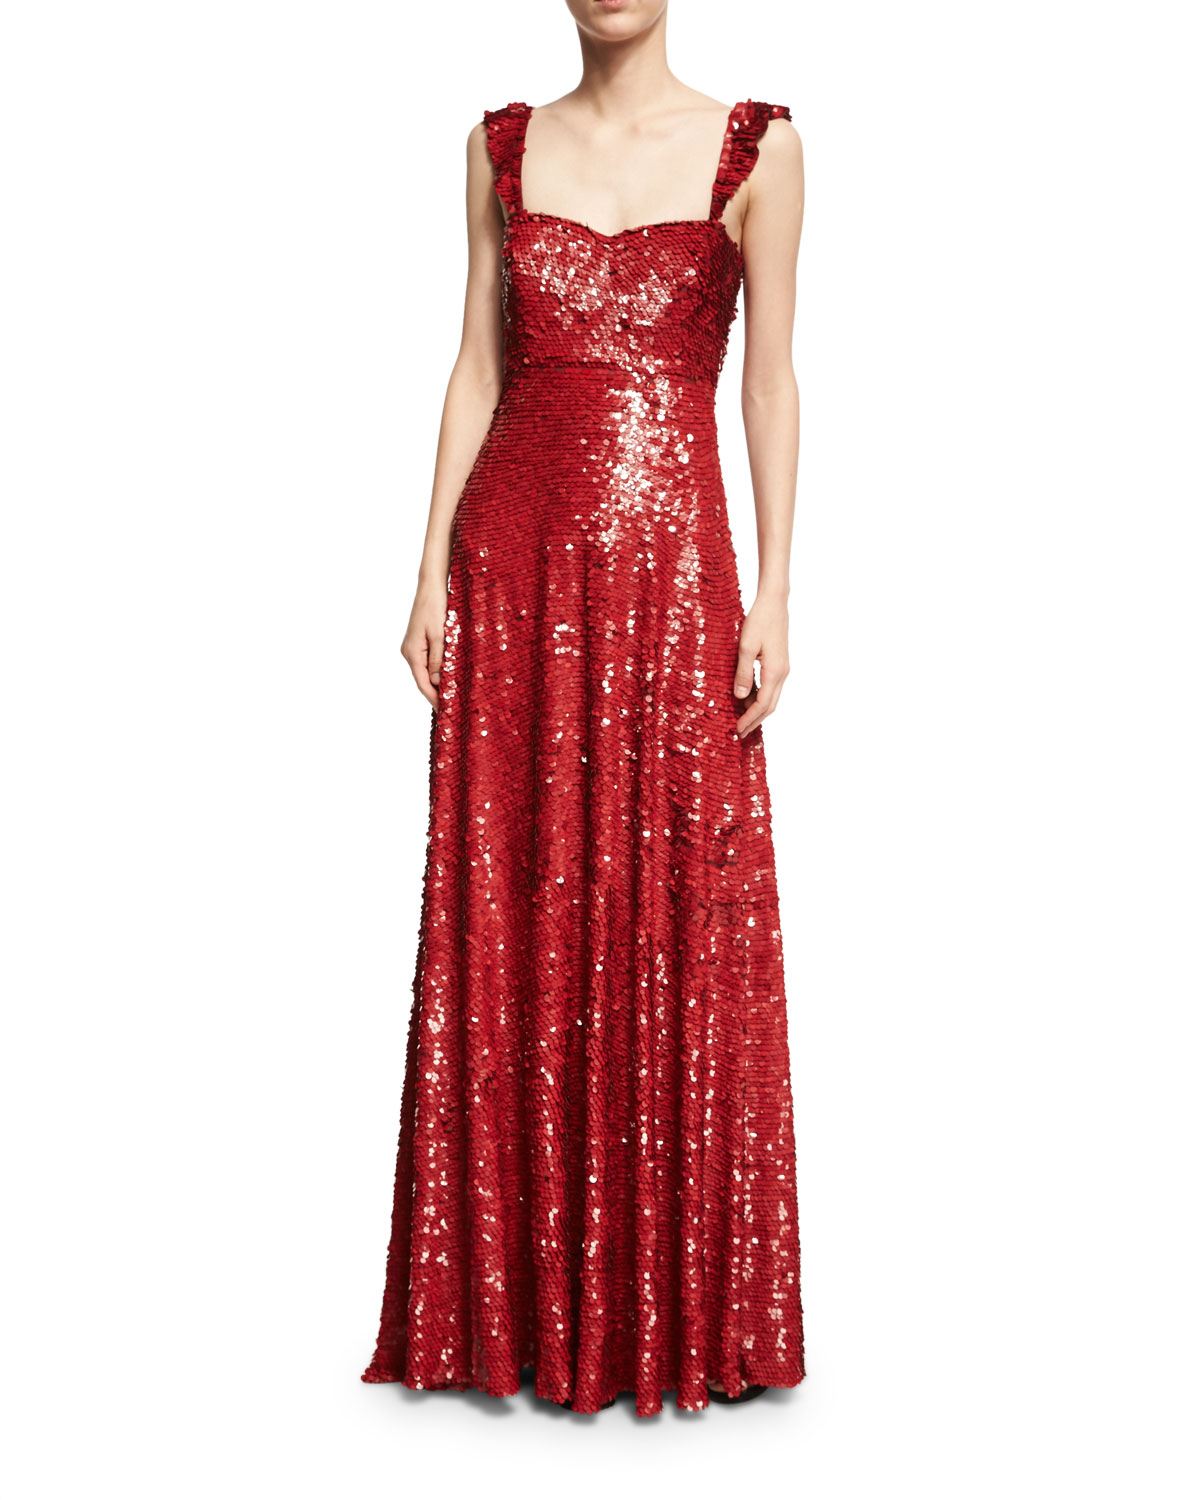 Straight Evening Gown | Neiman Marcus